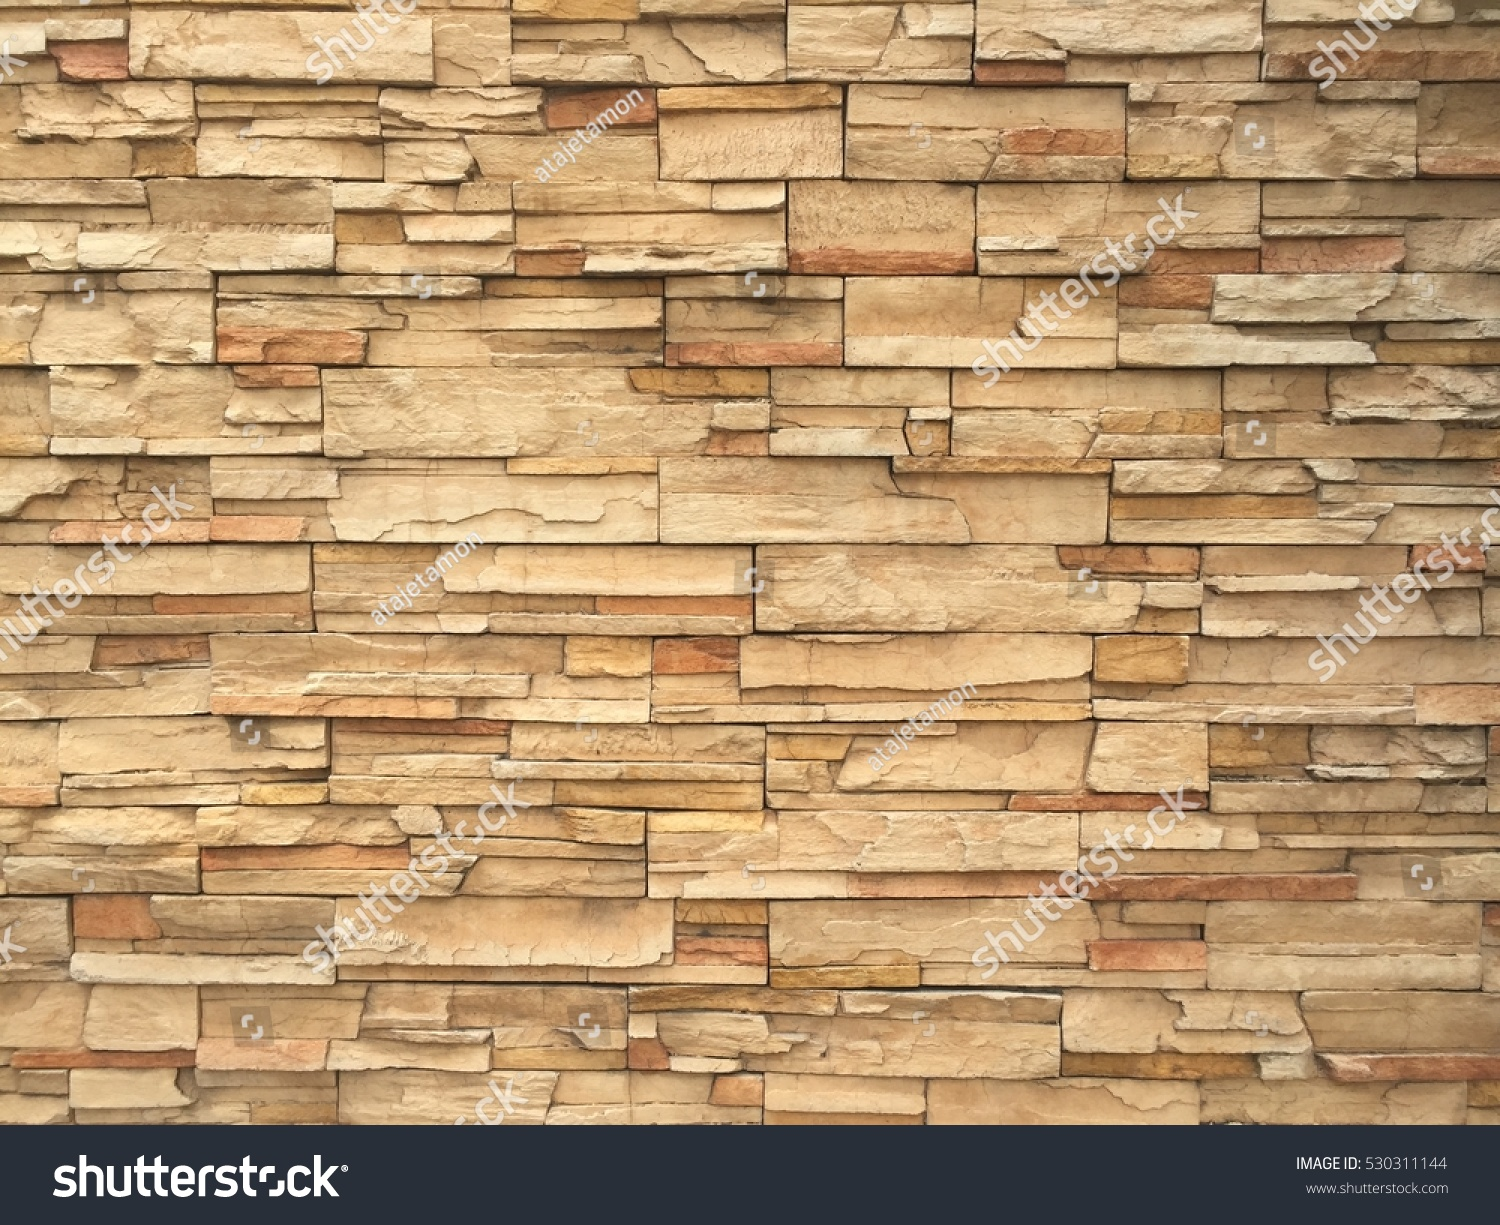 Sandstone Brick Wall Texture Background Stock Photo (Royalty Free ...